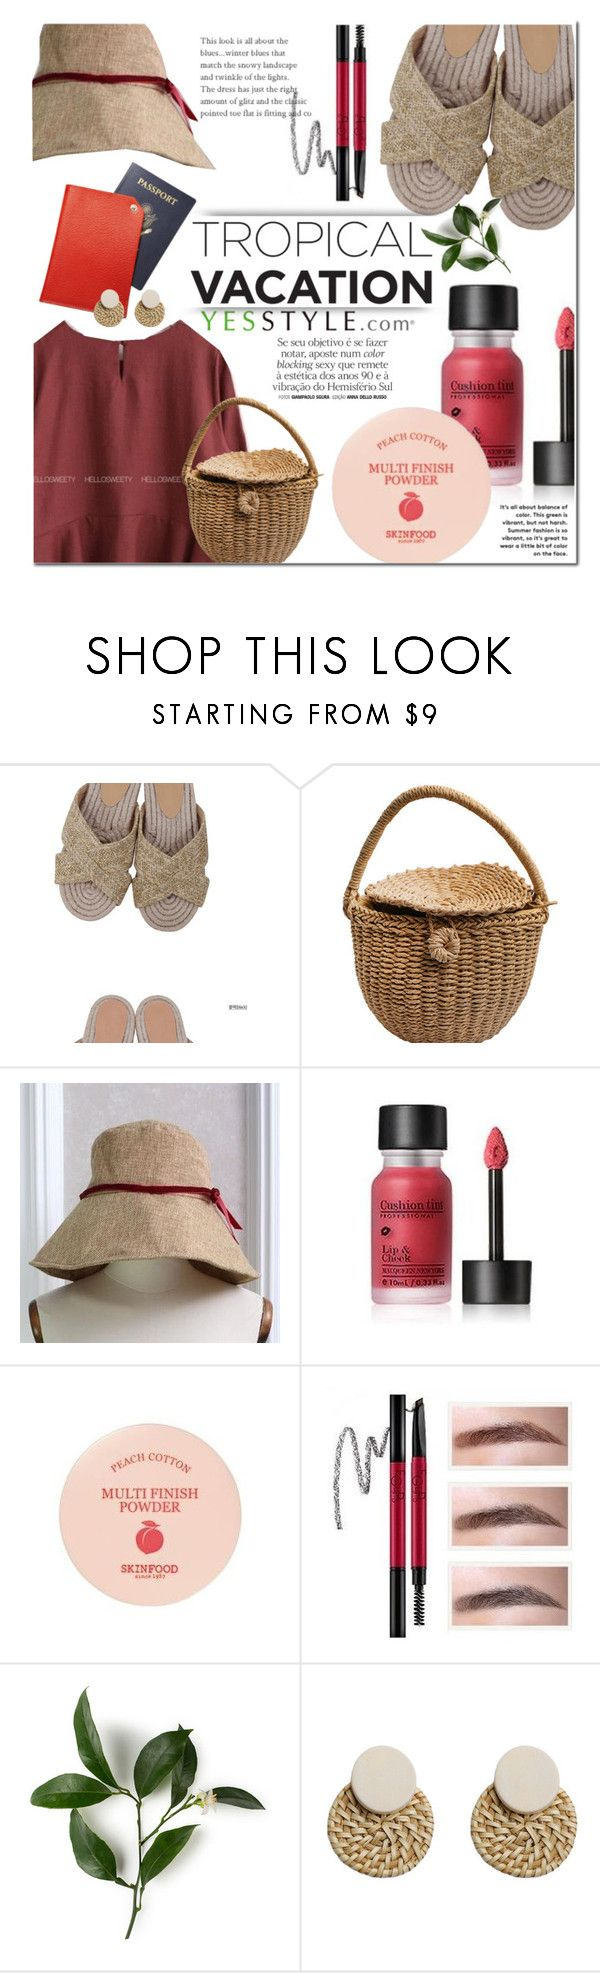 """Summer picnic outfit - YESSTYLE"" by dian-lado ❤ liked on Polyvore featuring Goroke and Skinfood"